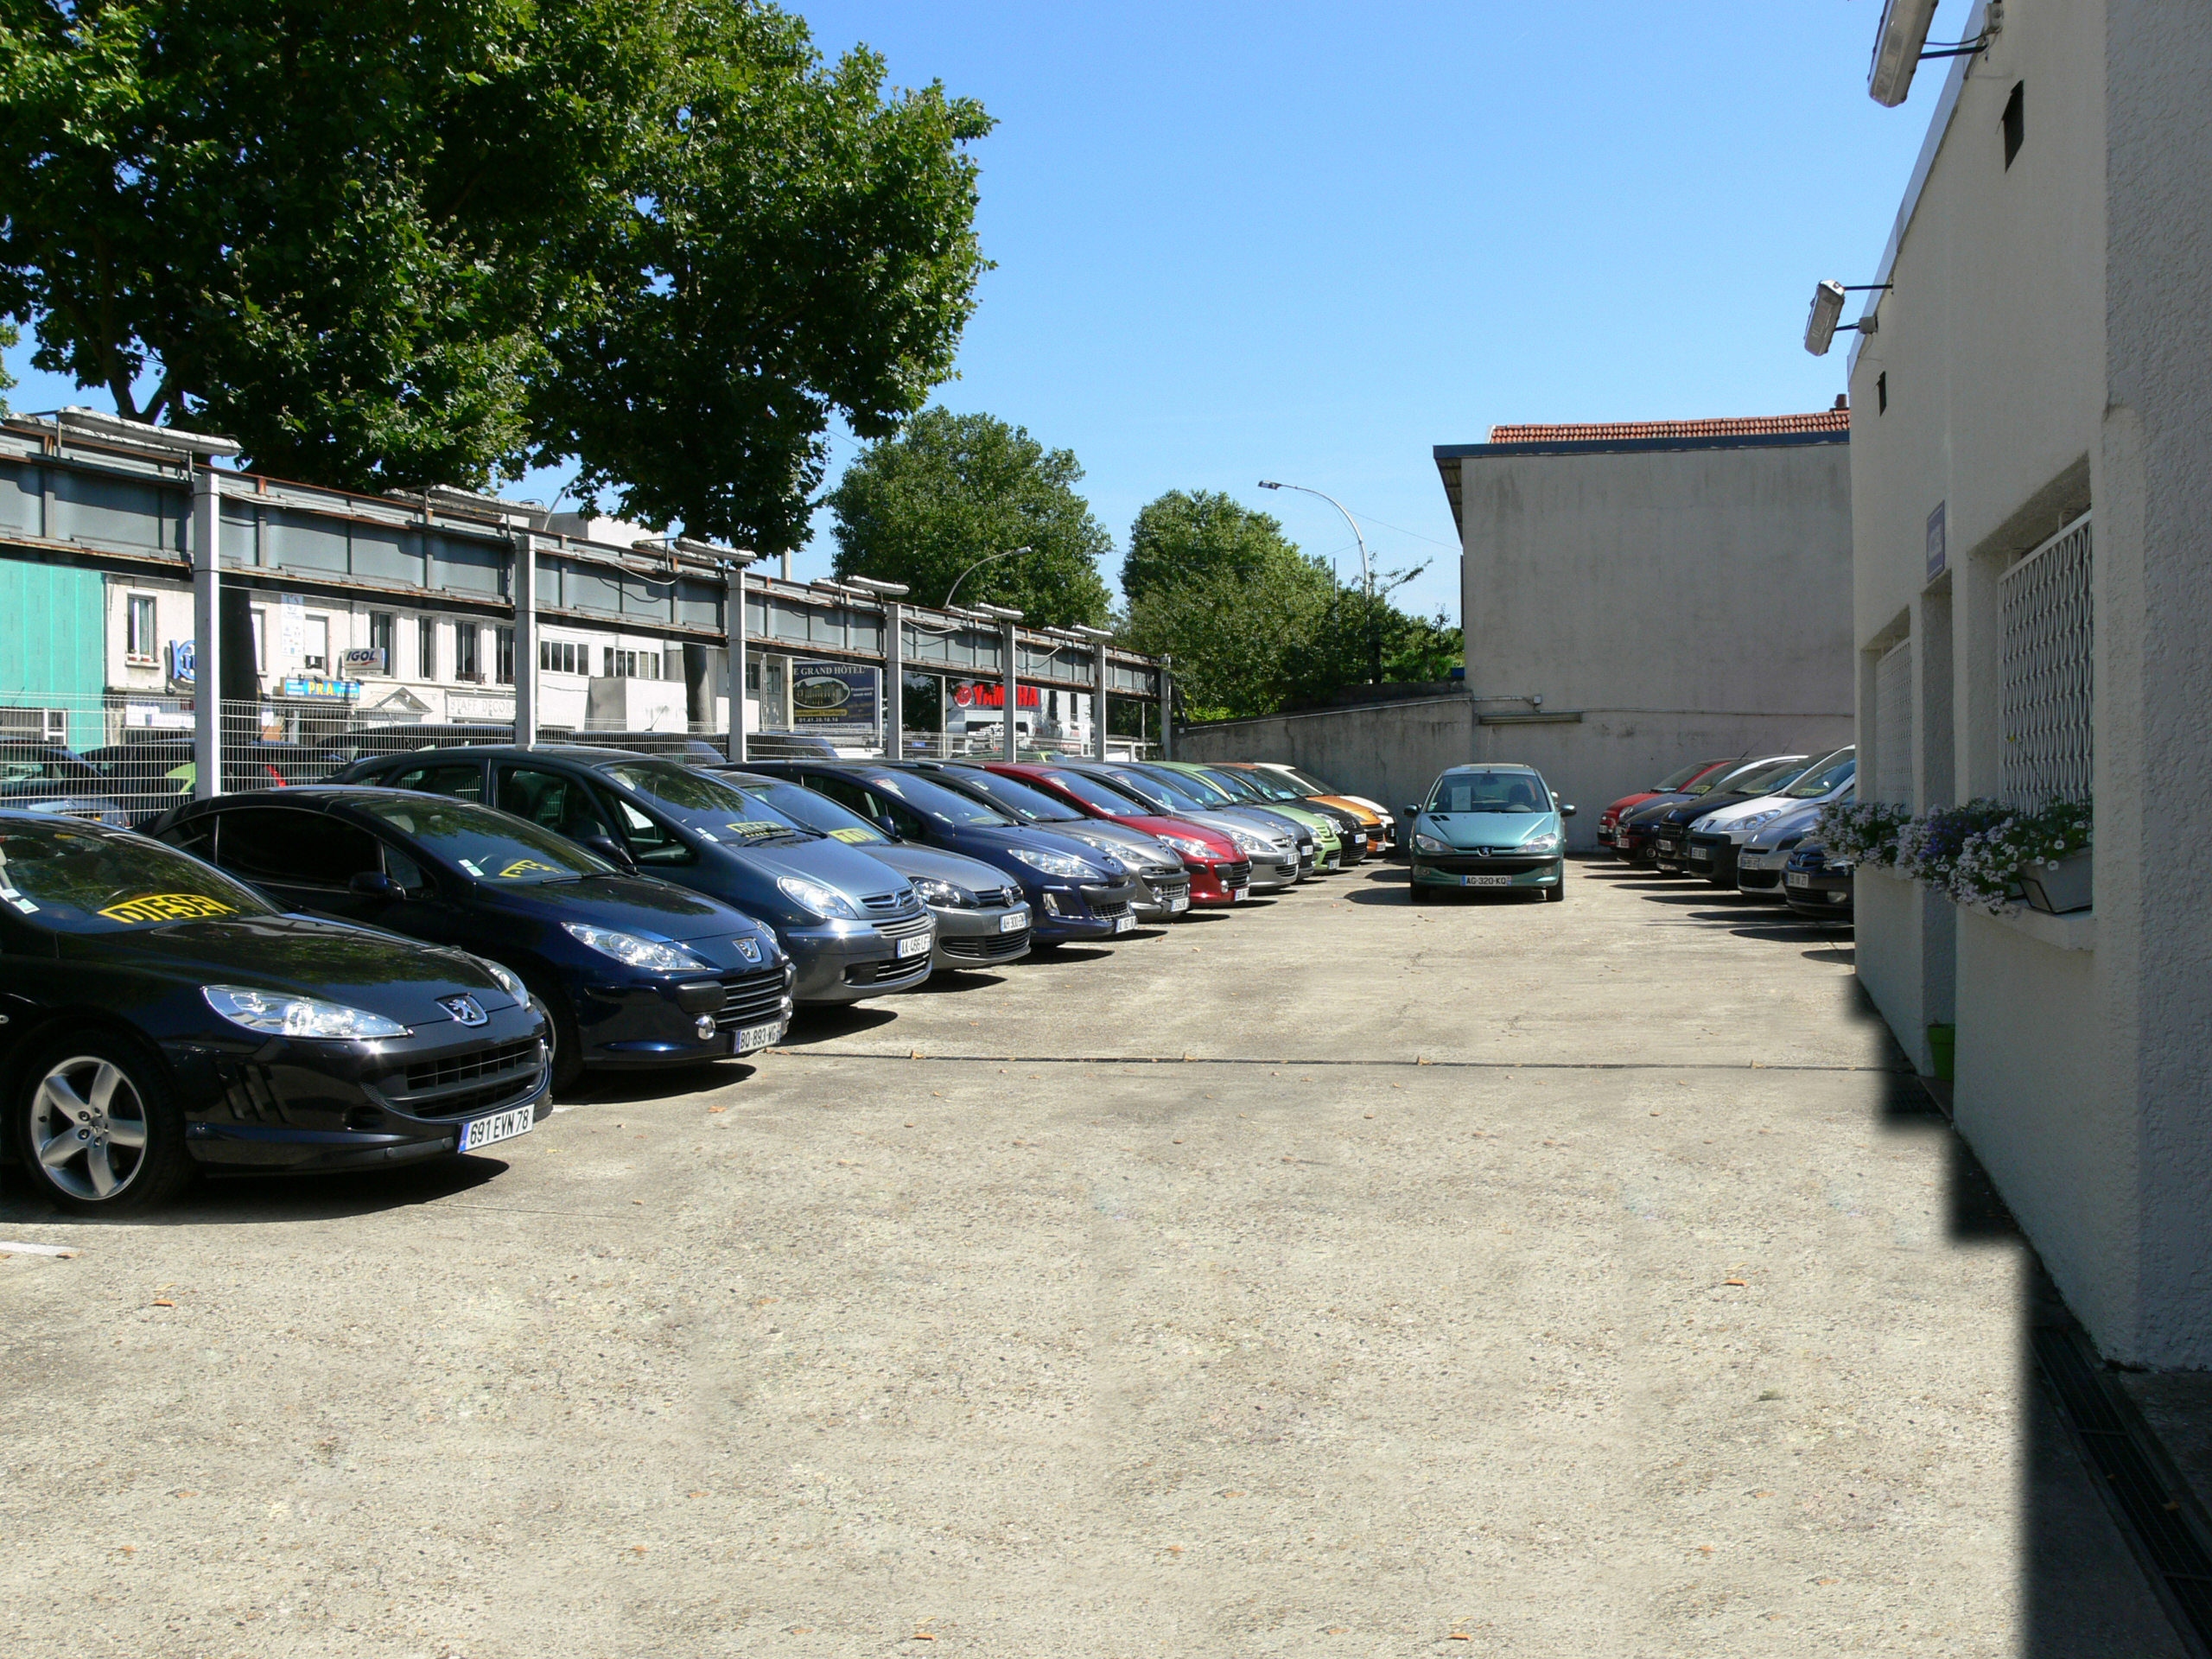 Garage vente voiture occasion deco garage voiture occasion ile de france 368548 garage vente - Garage occasion belgique ...